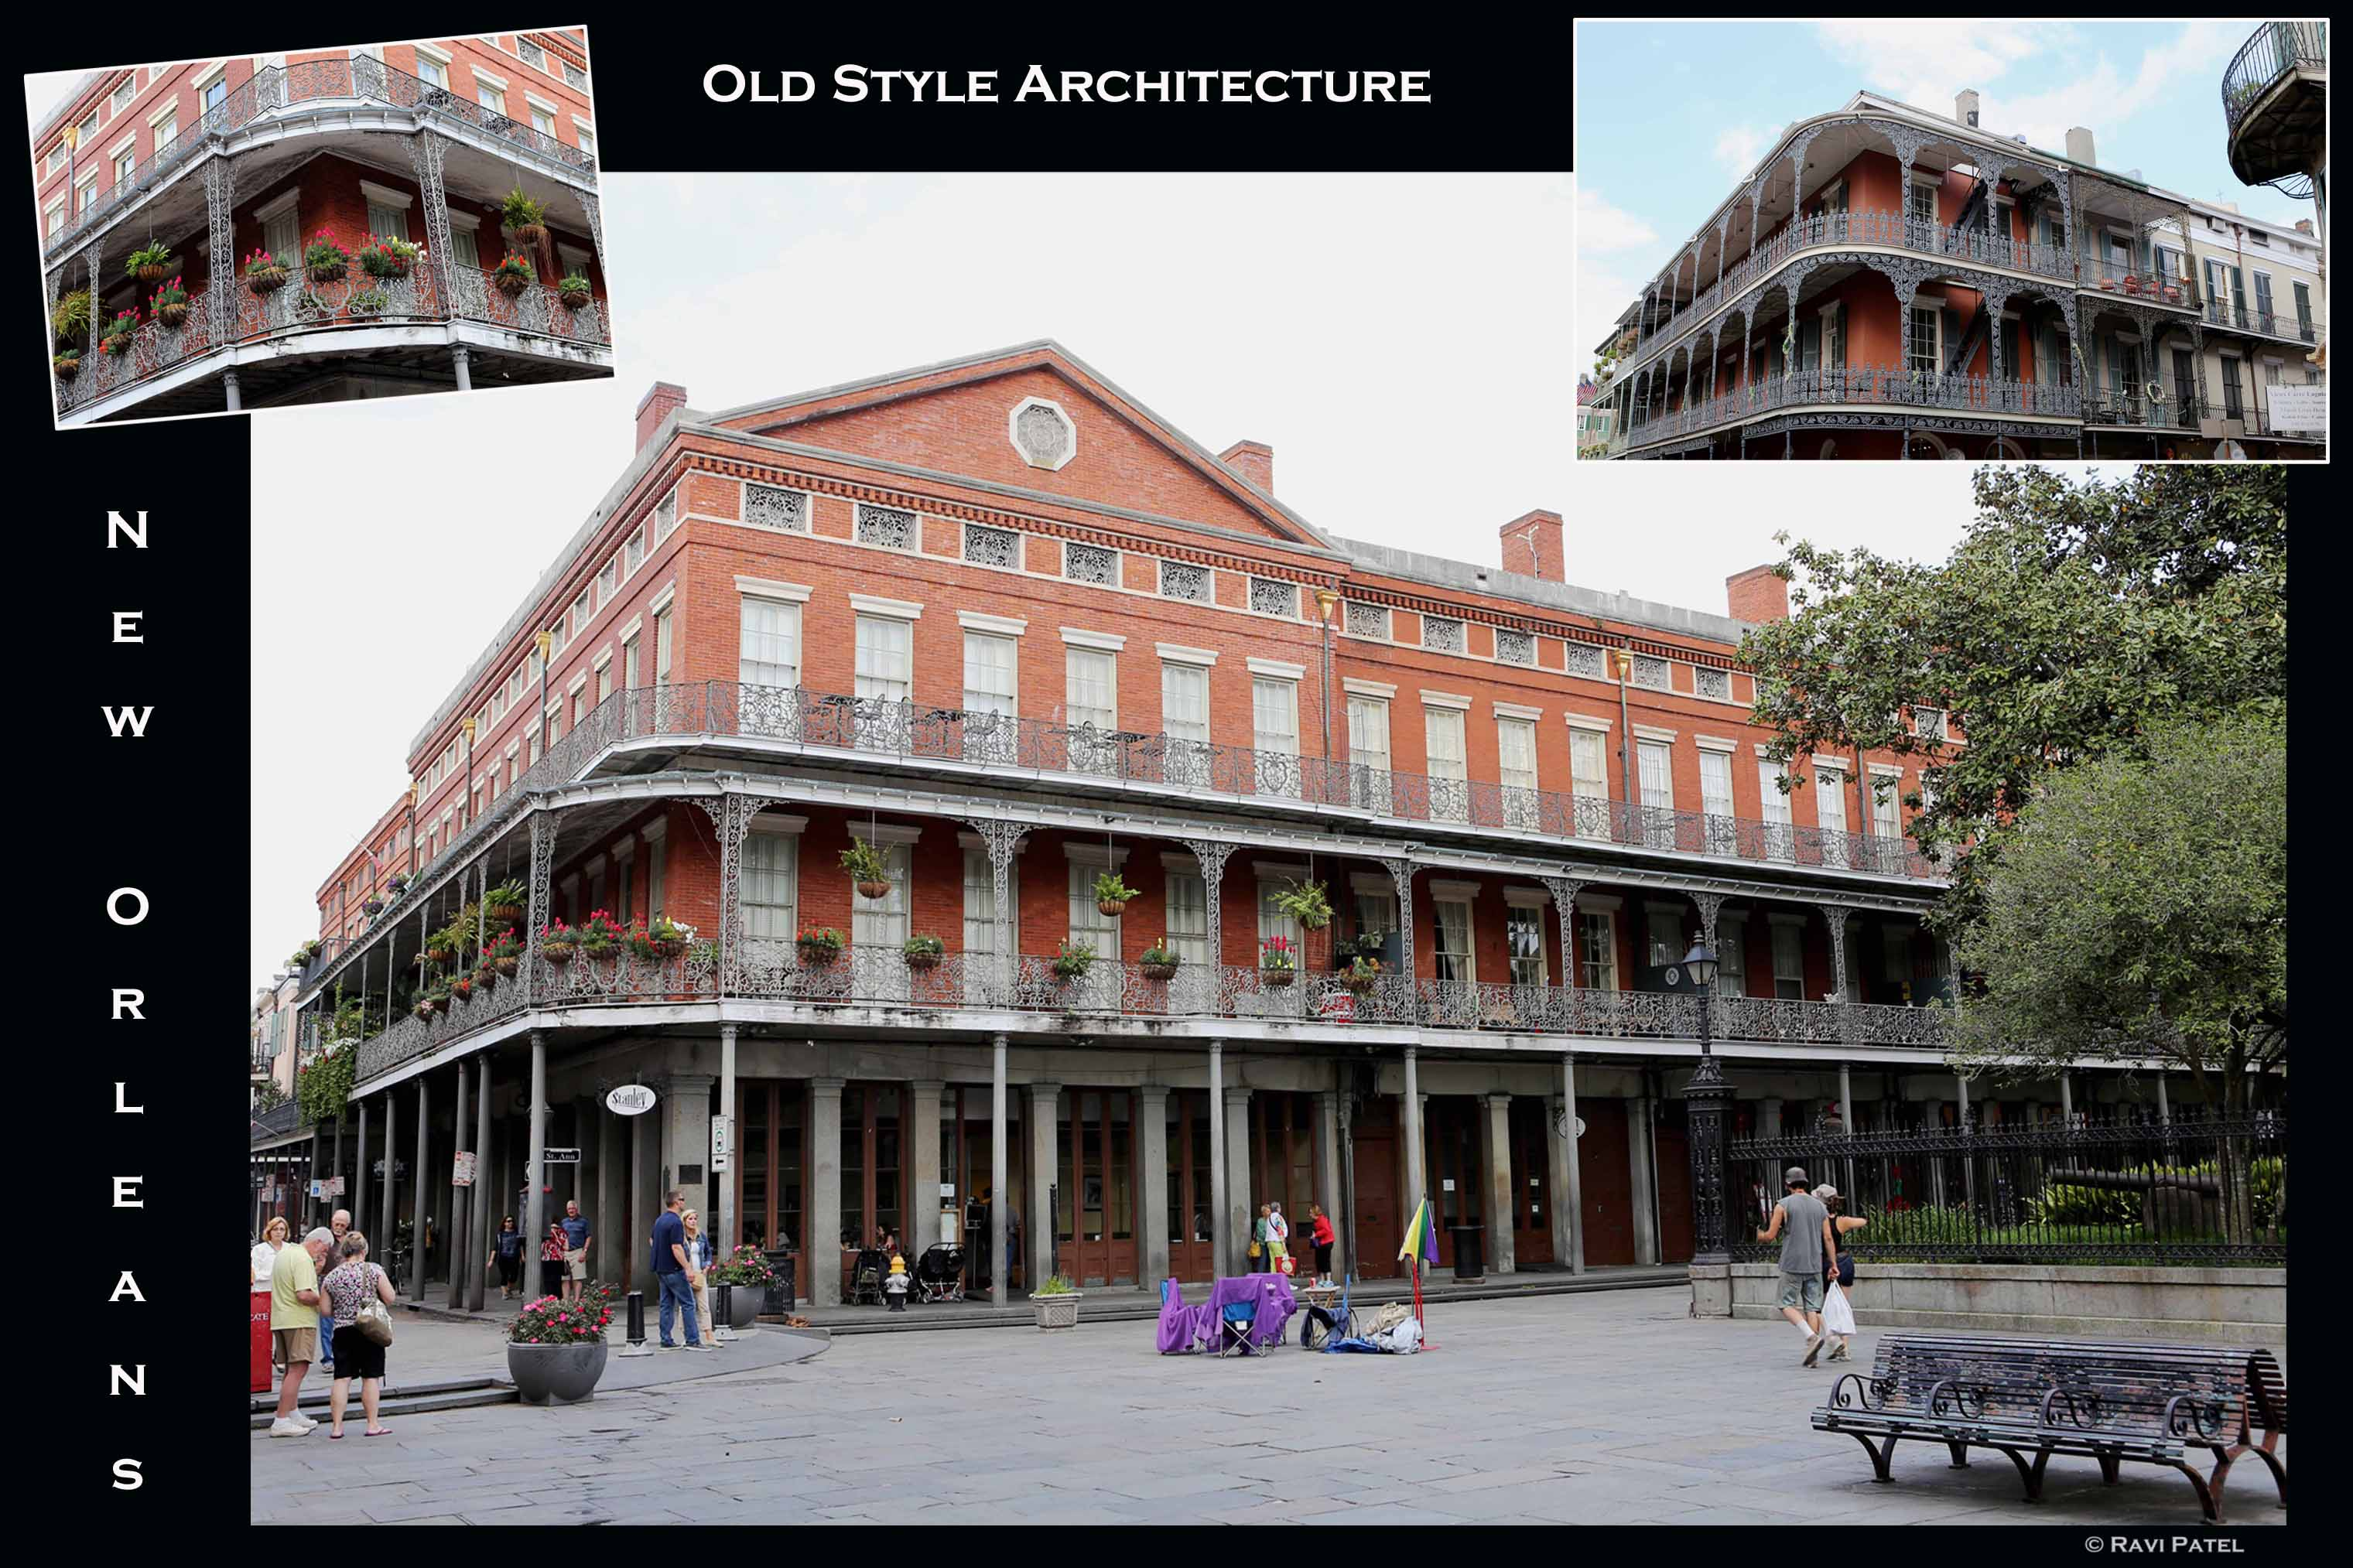 Louisiana – New Orleans Old Style Architecture | Photos by Ravi